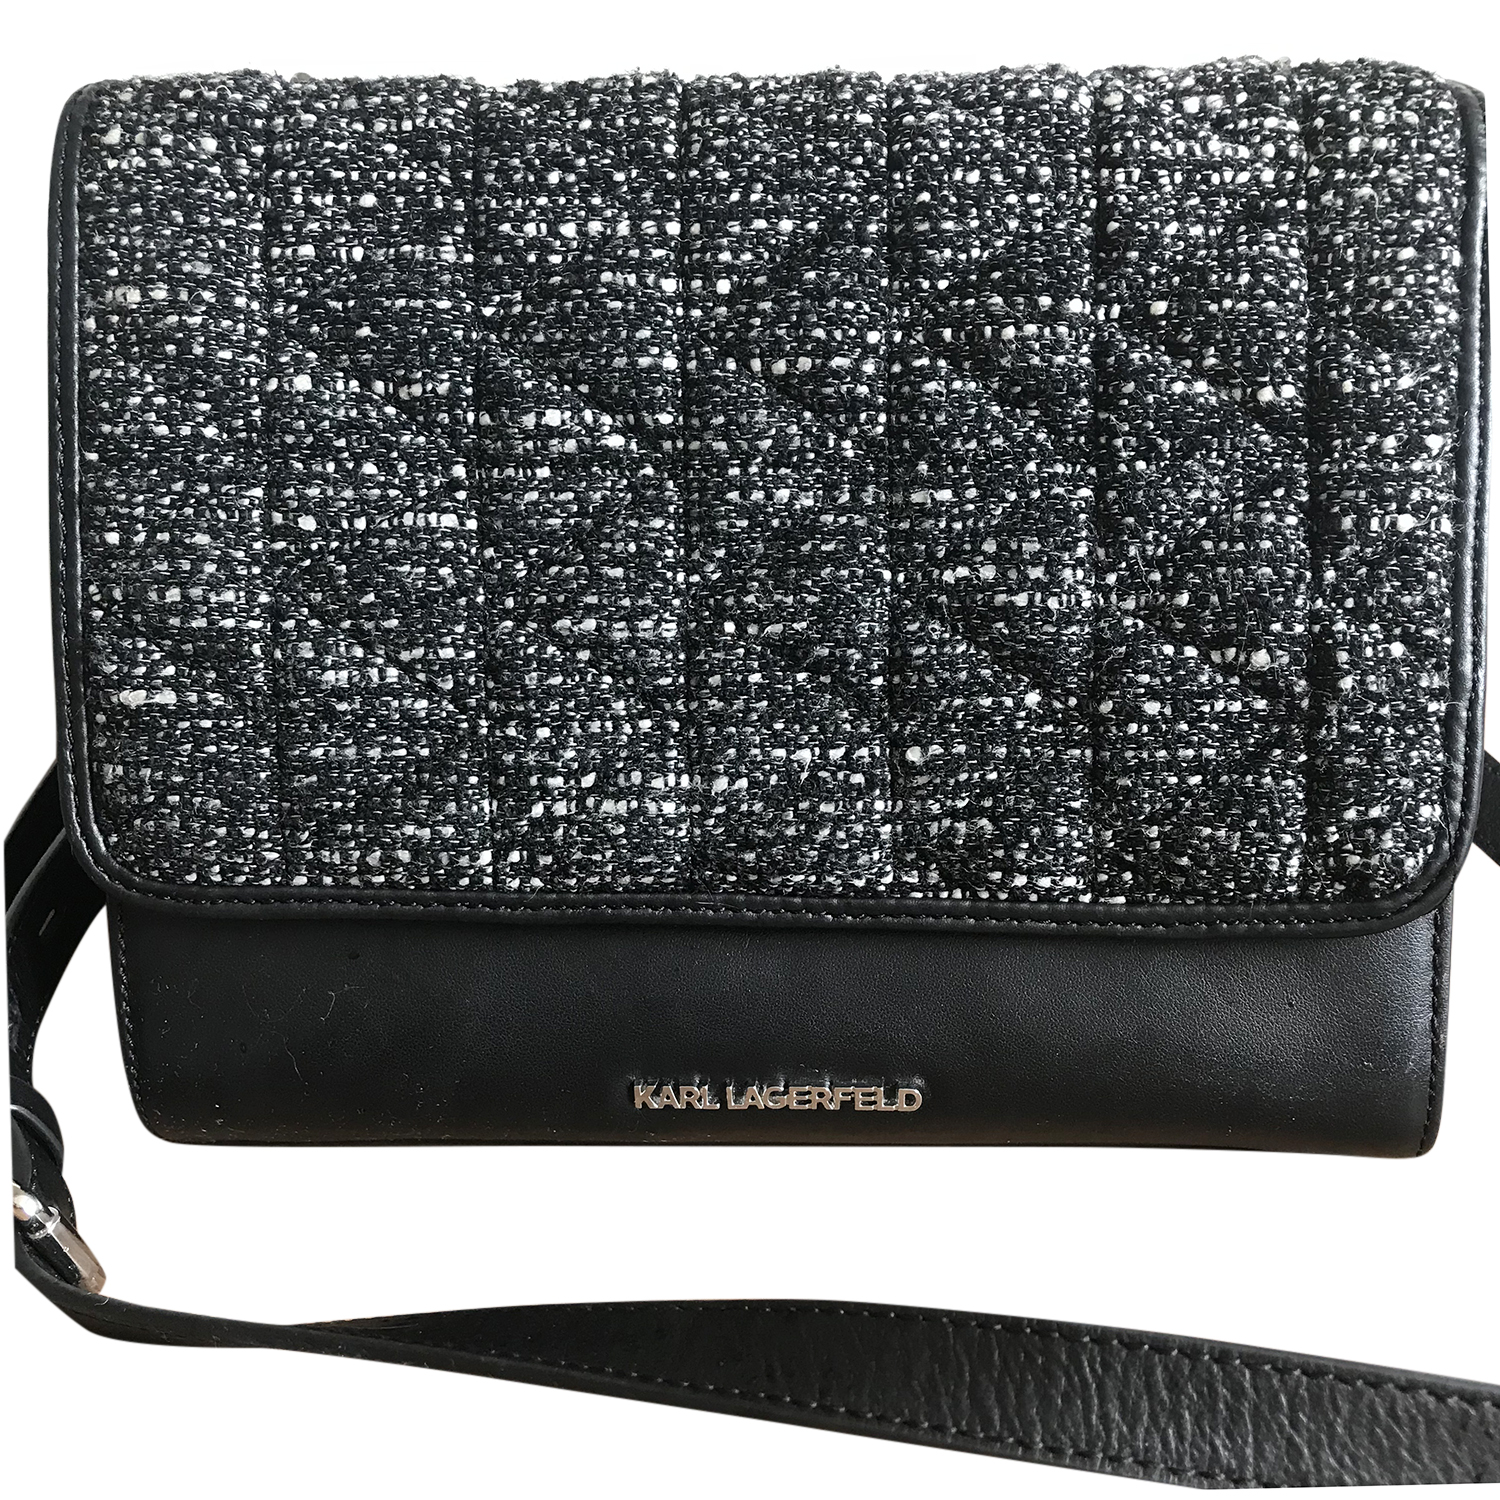 Karl Lagerfeld Leather & Tweed Flap Bag